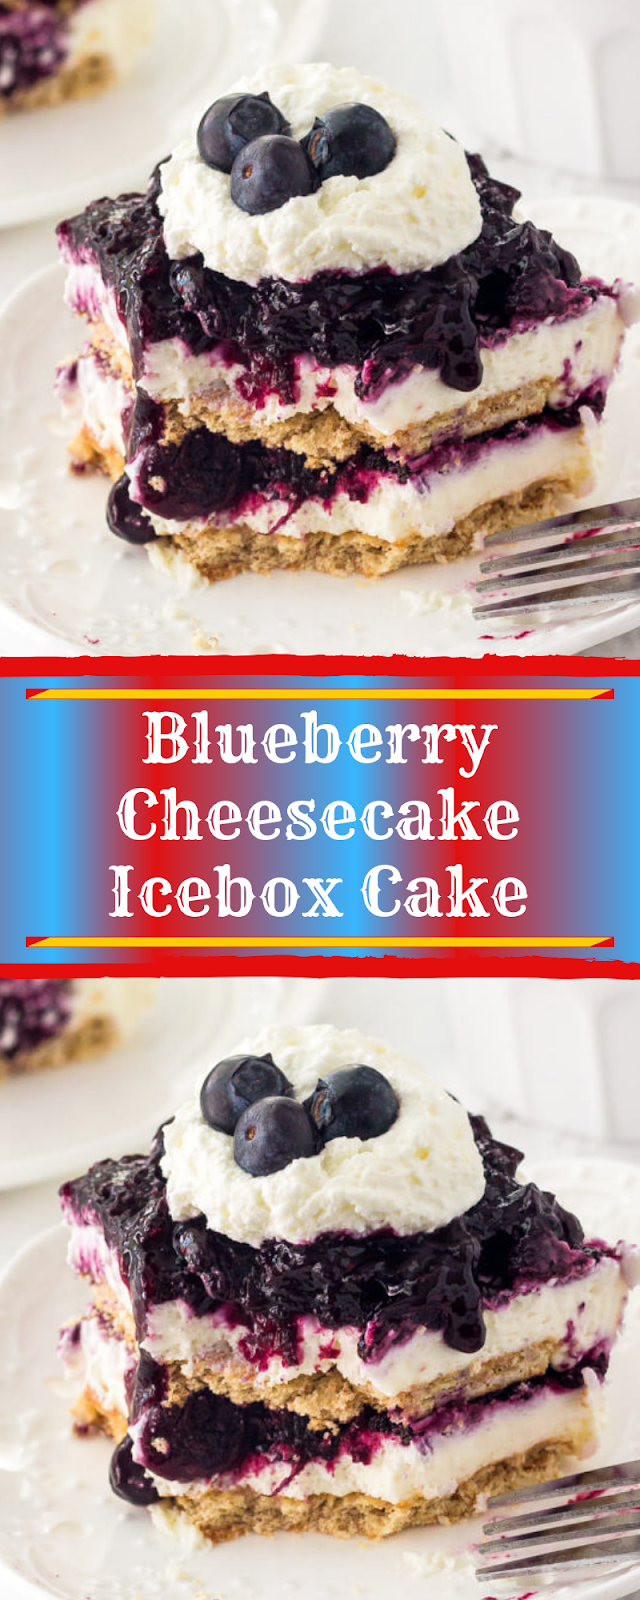 Blueberry Cheesecake Icebox Cake